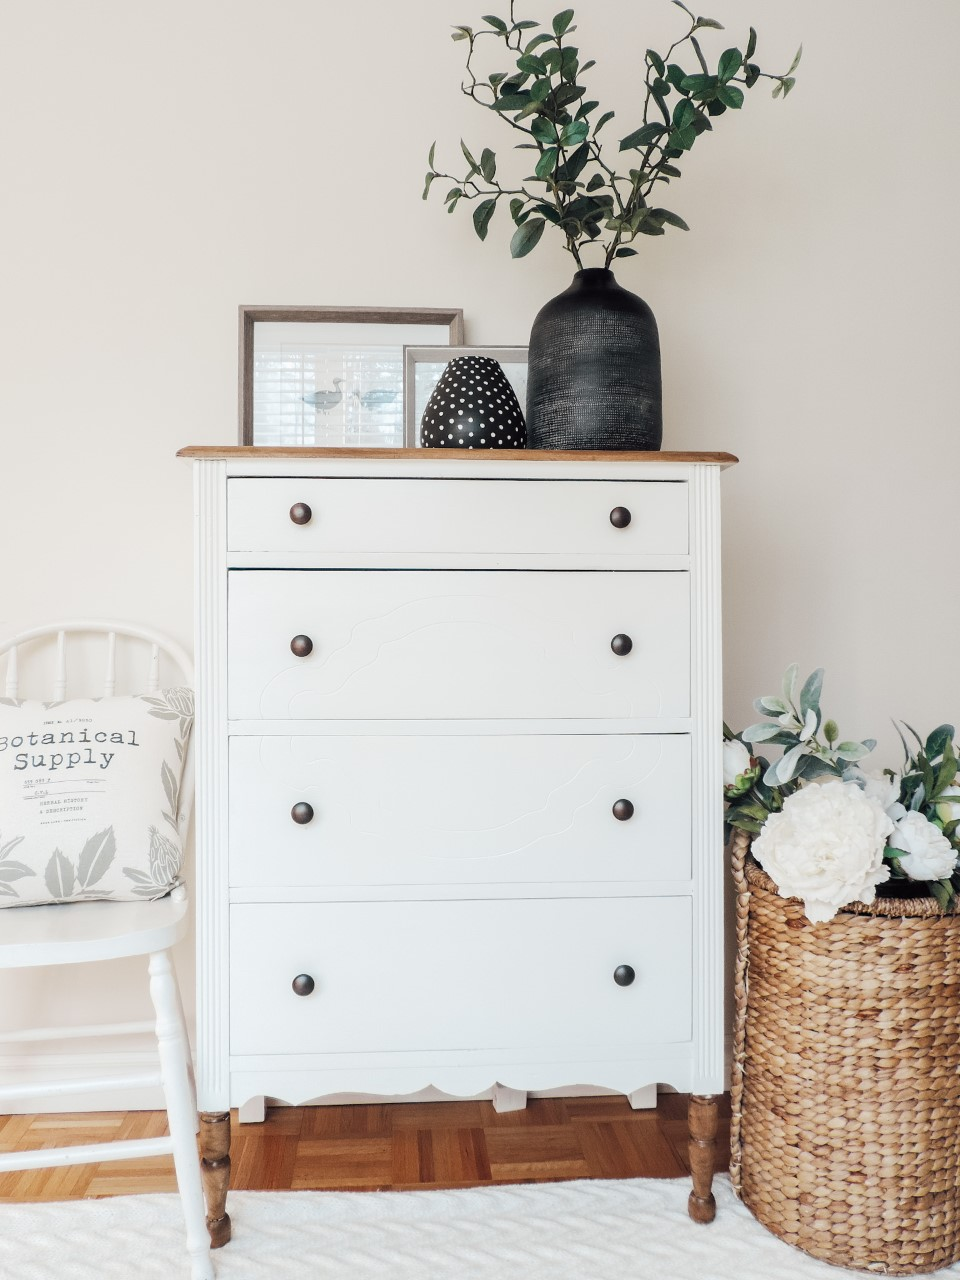 dresser before/after with homemade chalkpaint recipe. Recette de peinture à la craie.